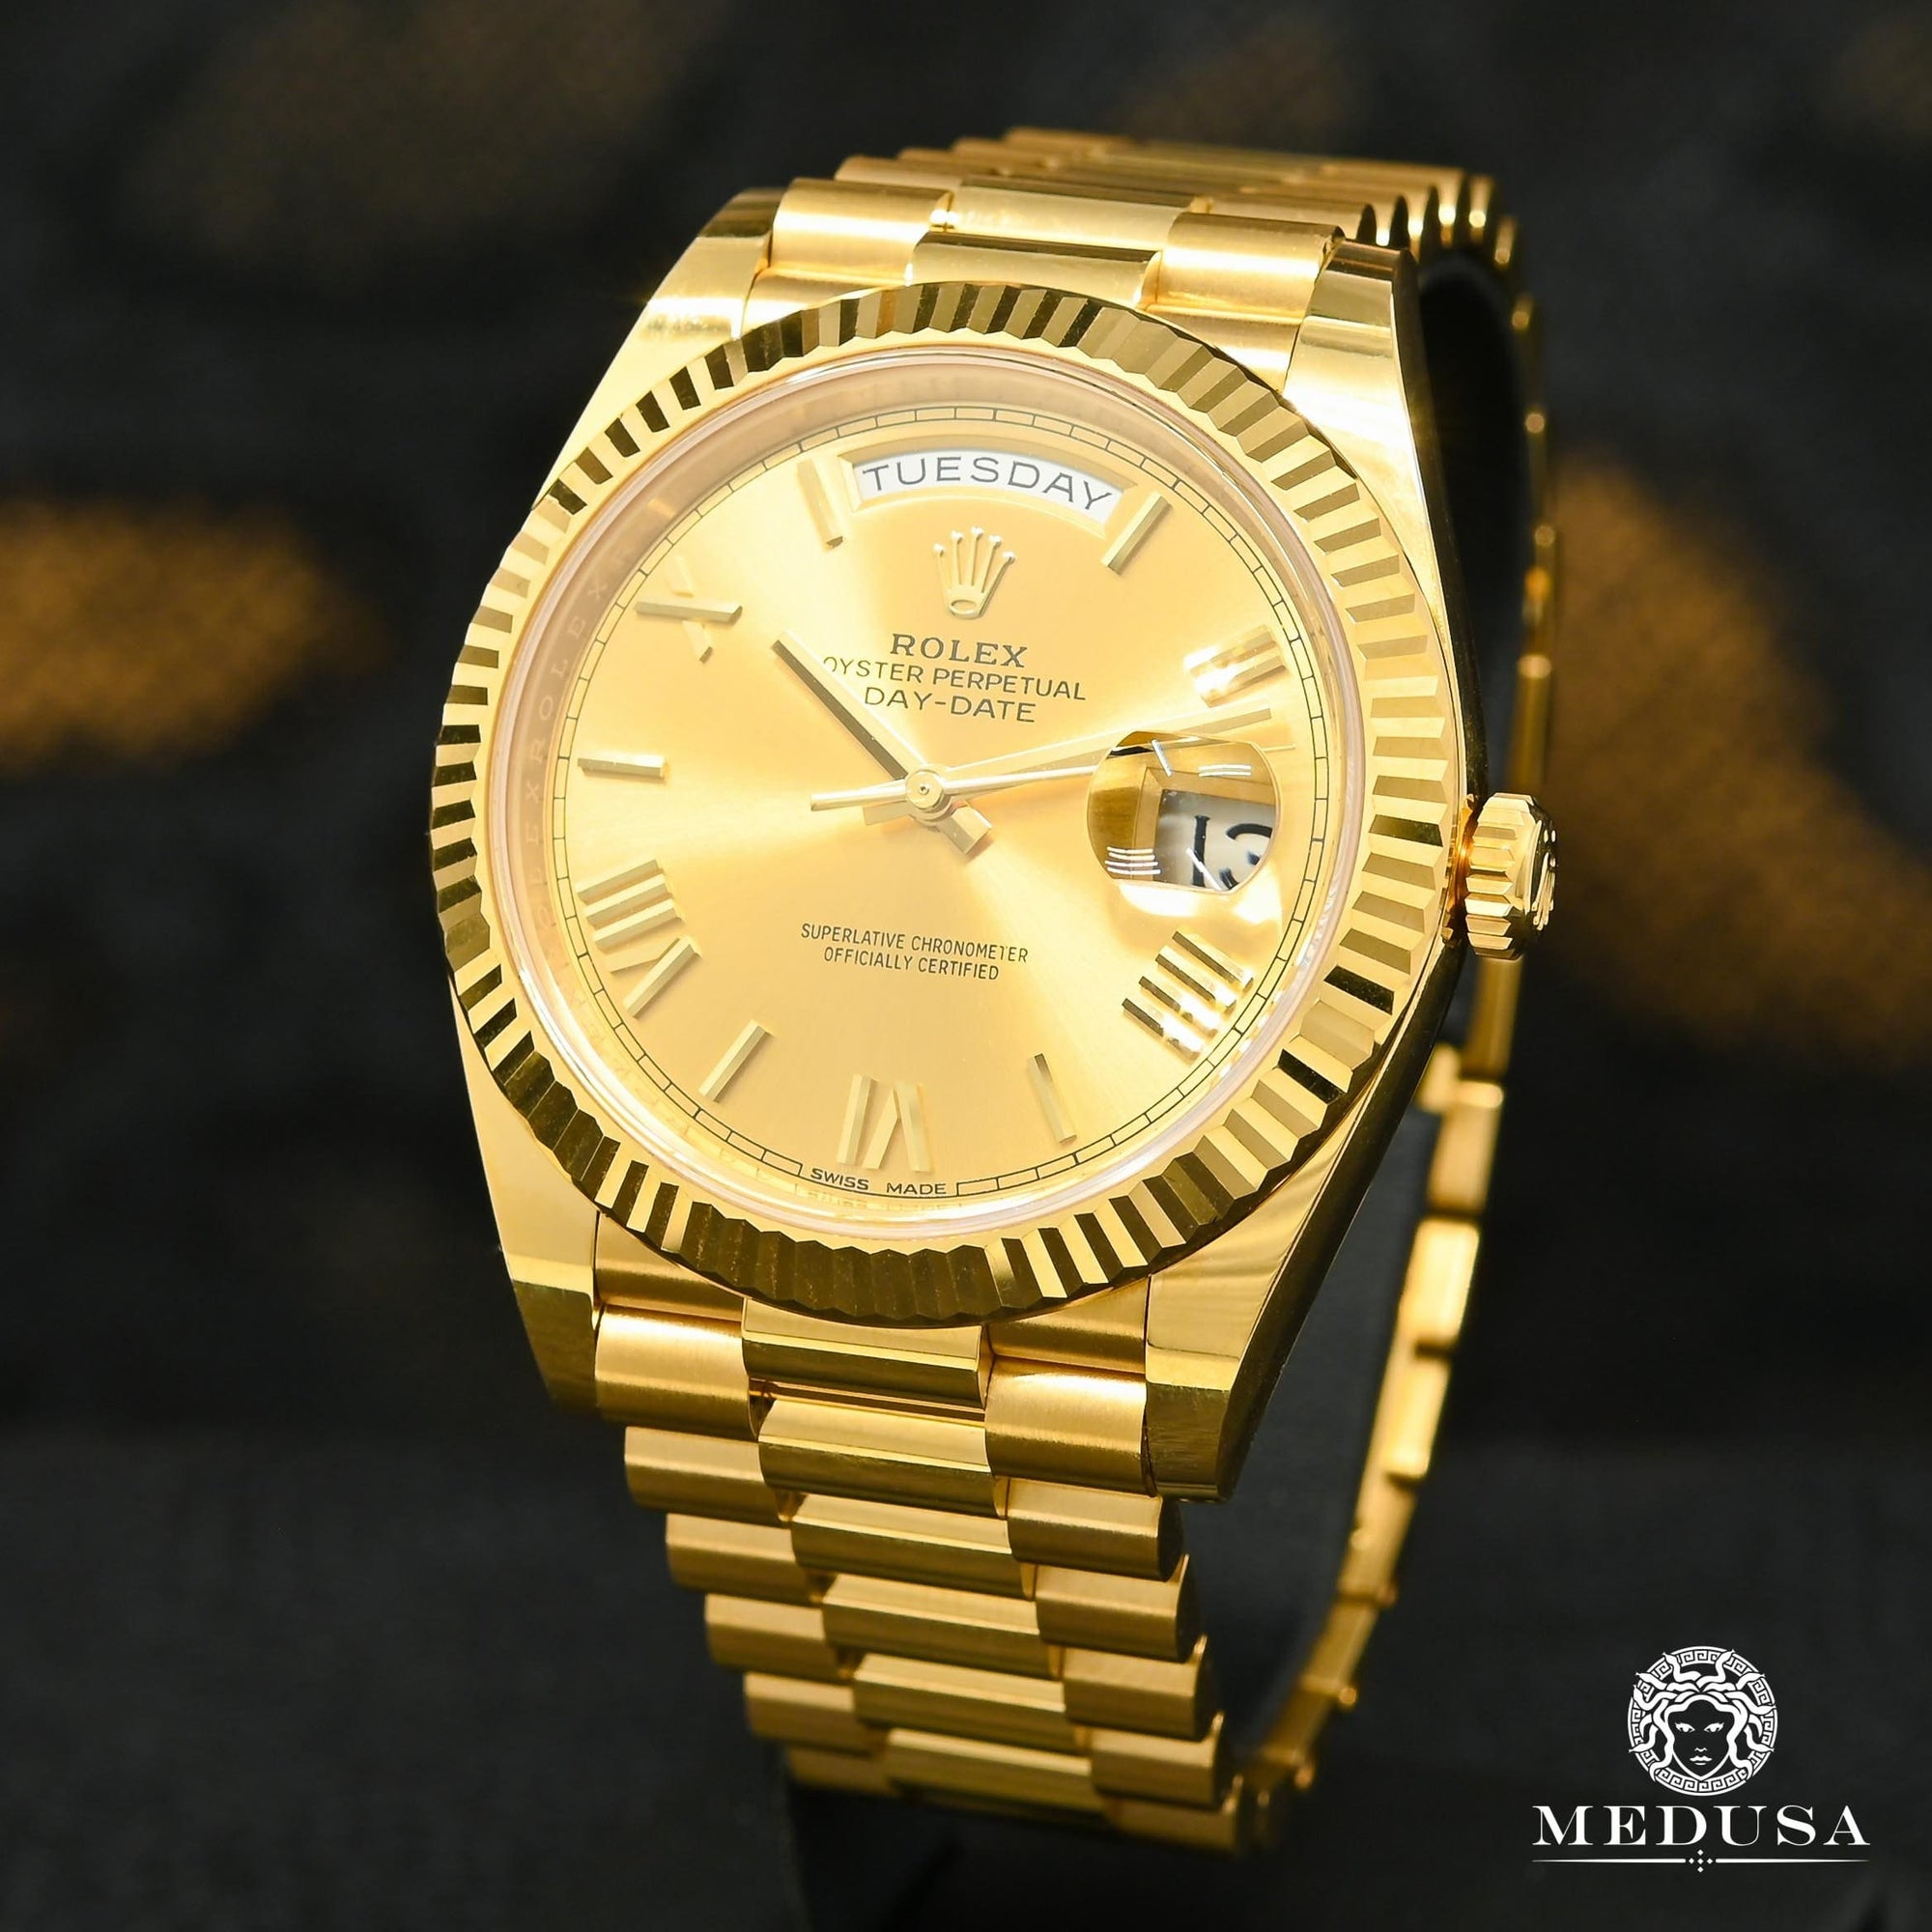 Montre Rolex | Montre Homme Rolex President Day-Date 40mm - Champagne Or Jaune